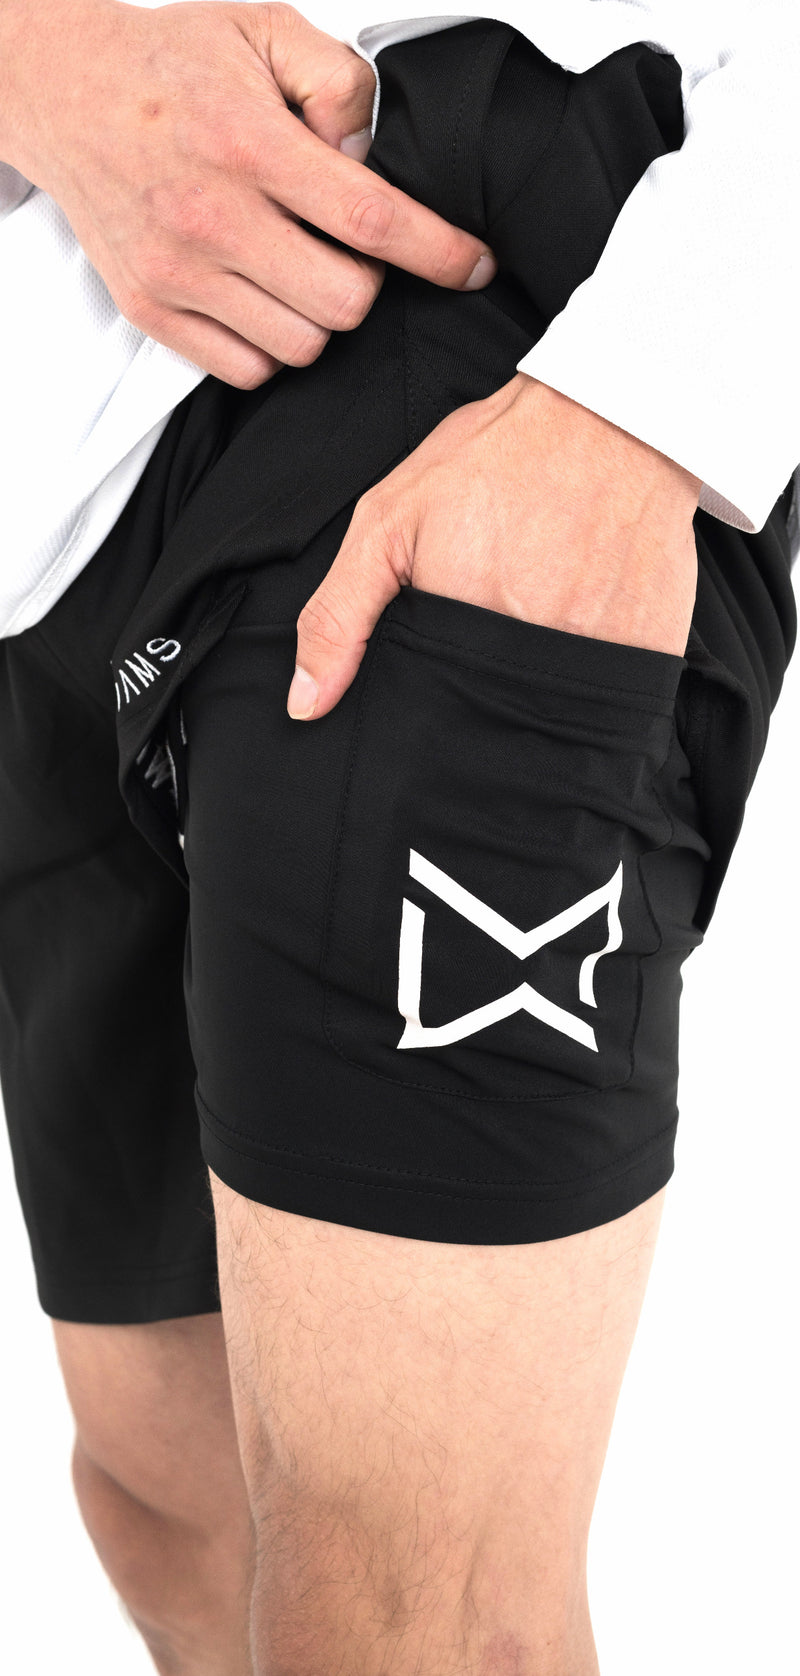 ^Hyper-Duo^ Jet Black Compression Shorts